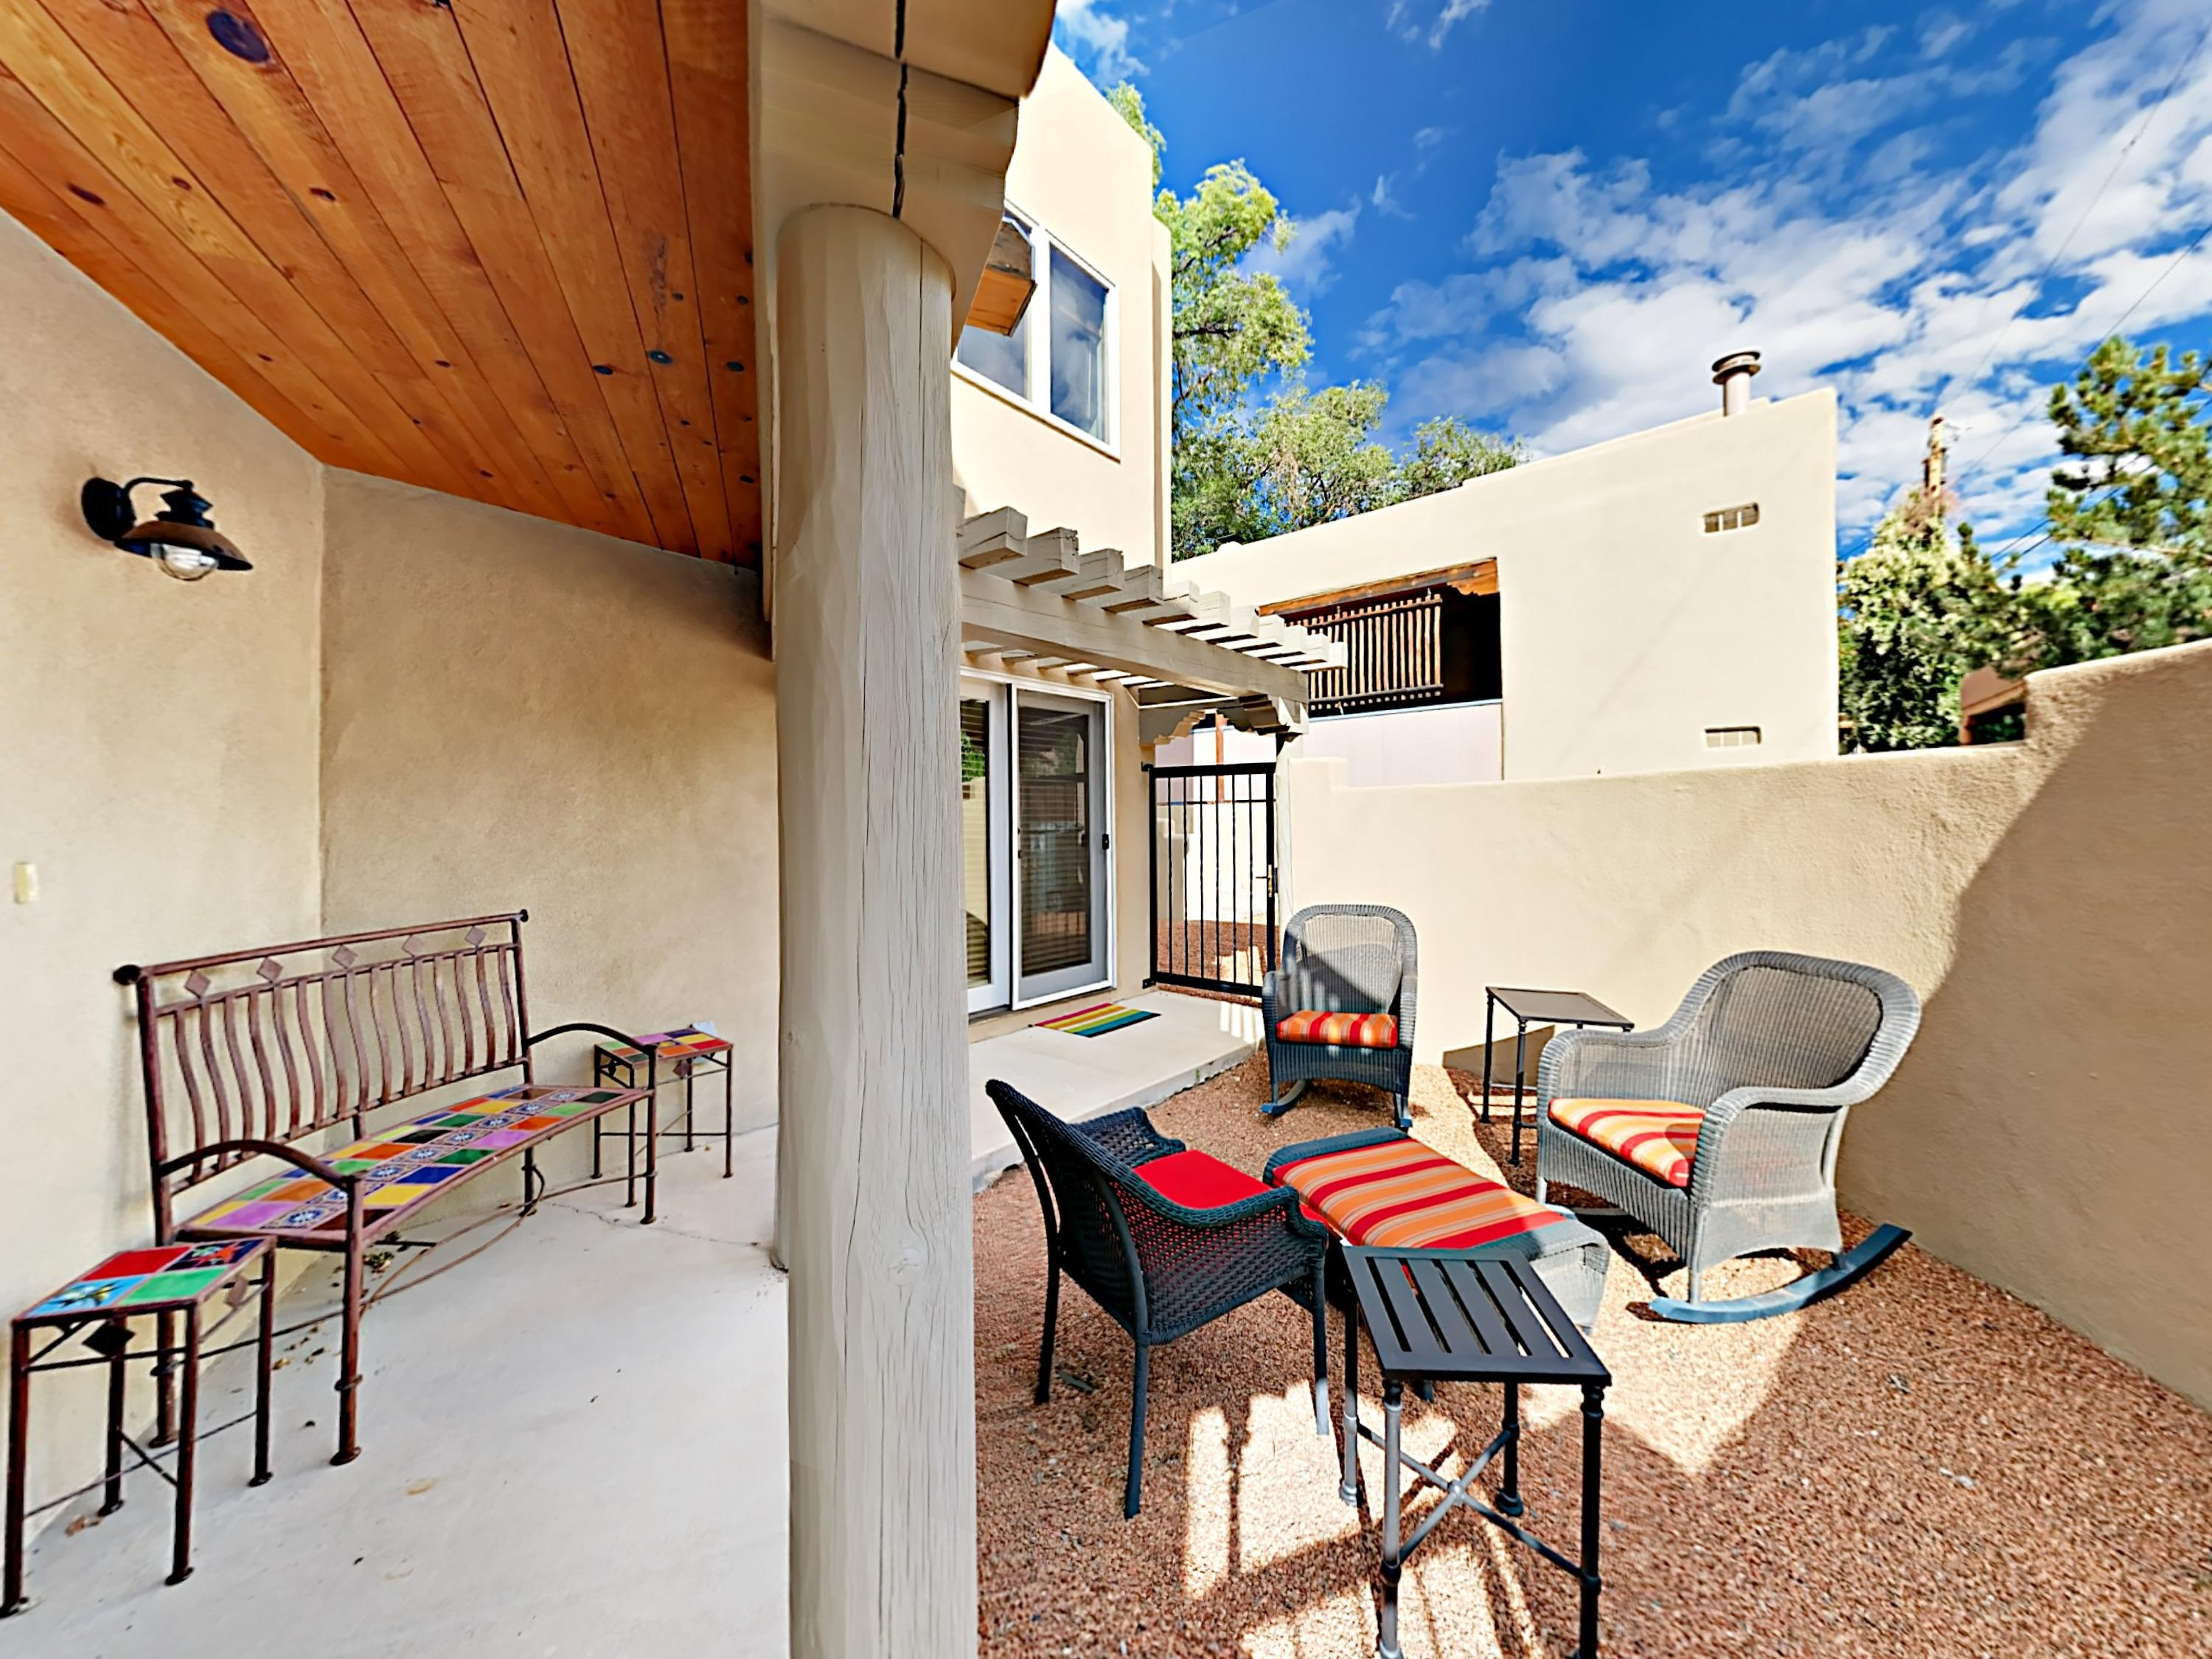 Enjoy sunny outdoor lounge space at this Santa Fe home, professionally managed and maintained by TurnKey Vacation Rentals.